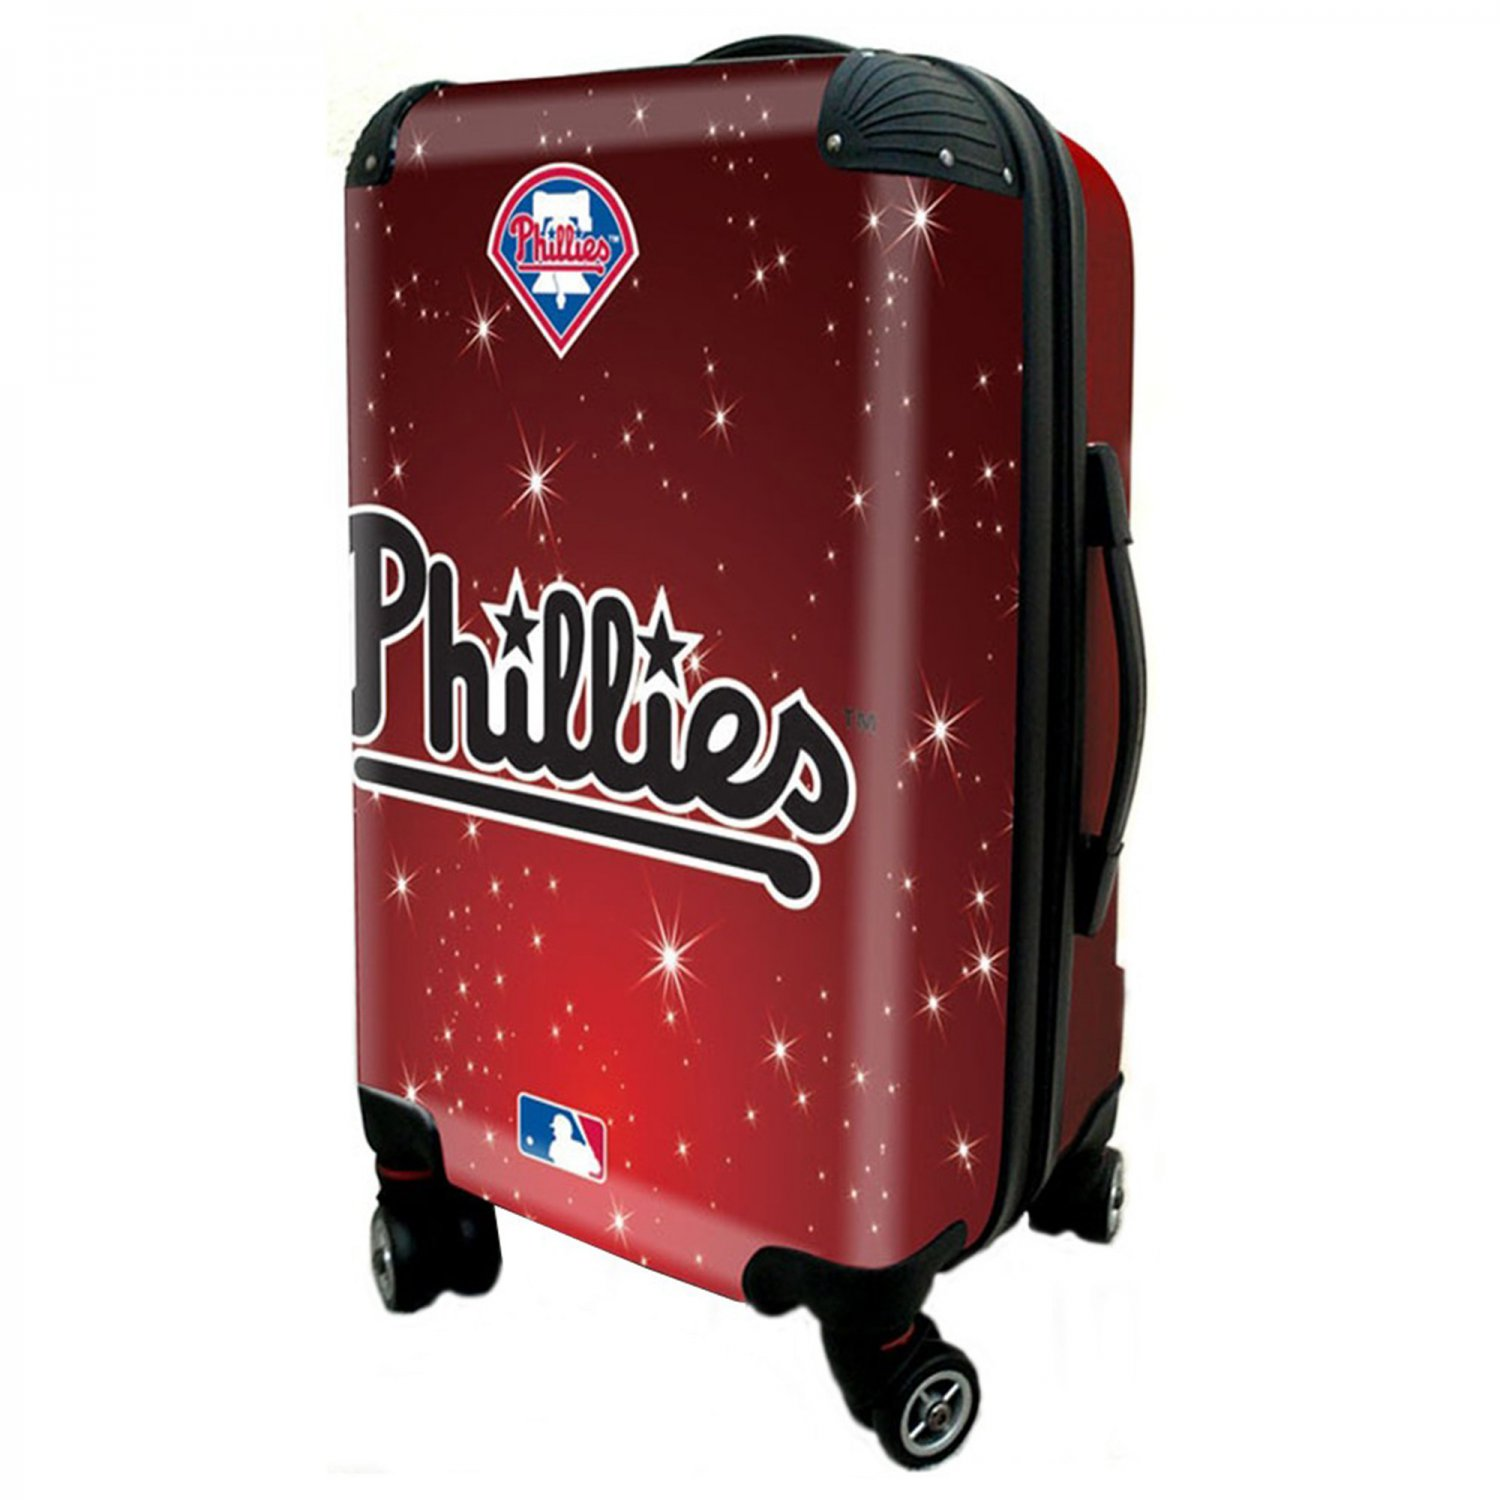 """Philadelphia Phillies, 21"""" Clear Poly Carry-On Luggage by Kaybull #PHI8"""